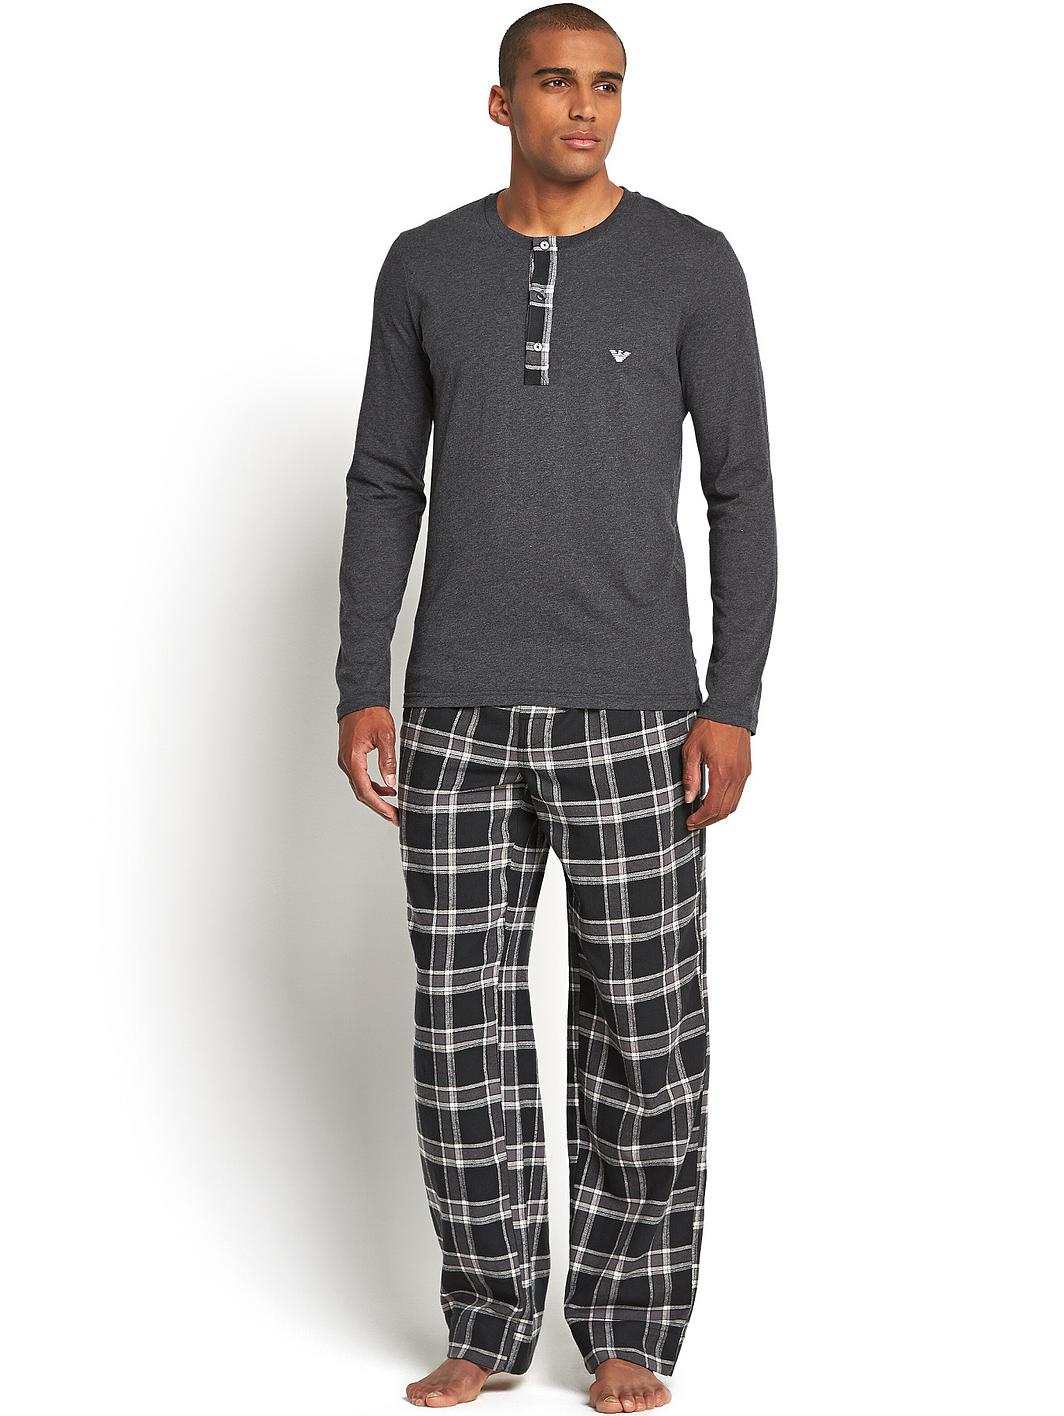 Stay comfortable at night with some men's pyjamas or nightwear. Soft trousers and long-sleeved tops will keep you cosy on chilly nights; switch to loose and light T .